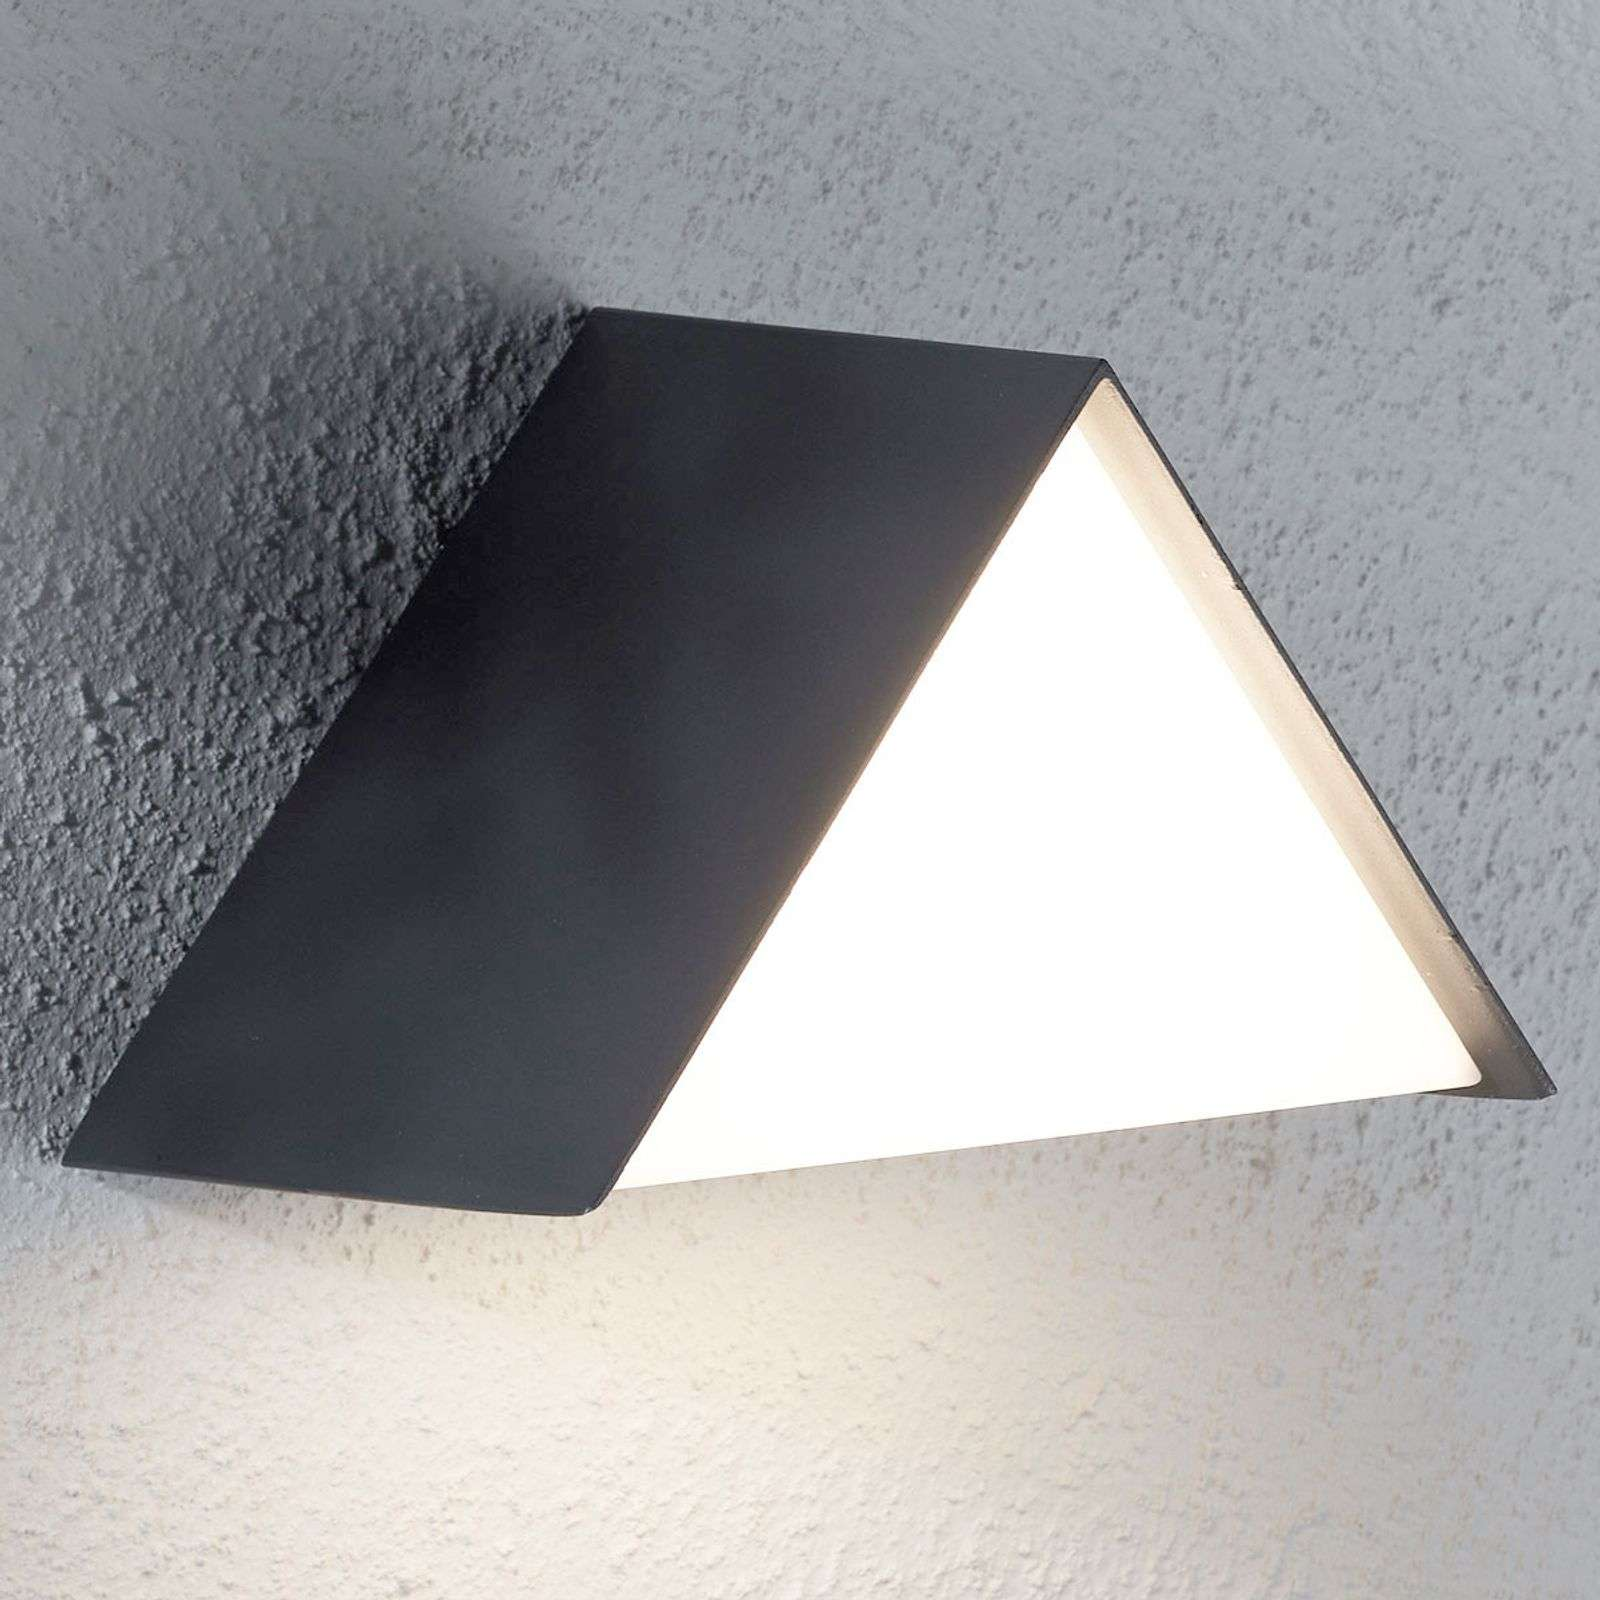 Applique da esterni LED Miana, triangolare a tetto